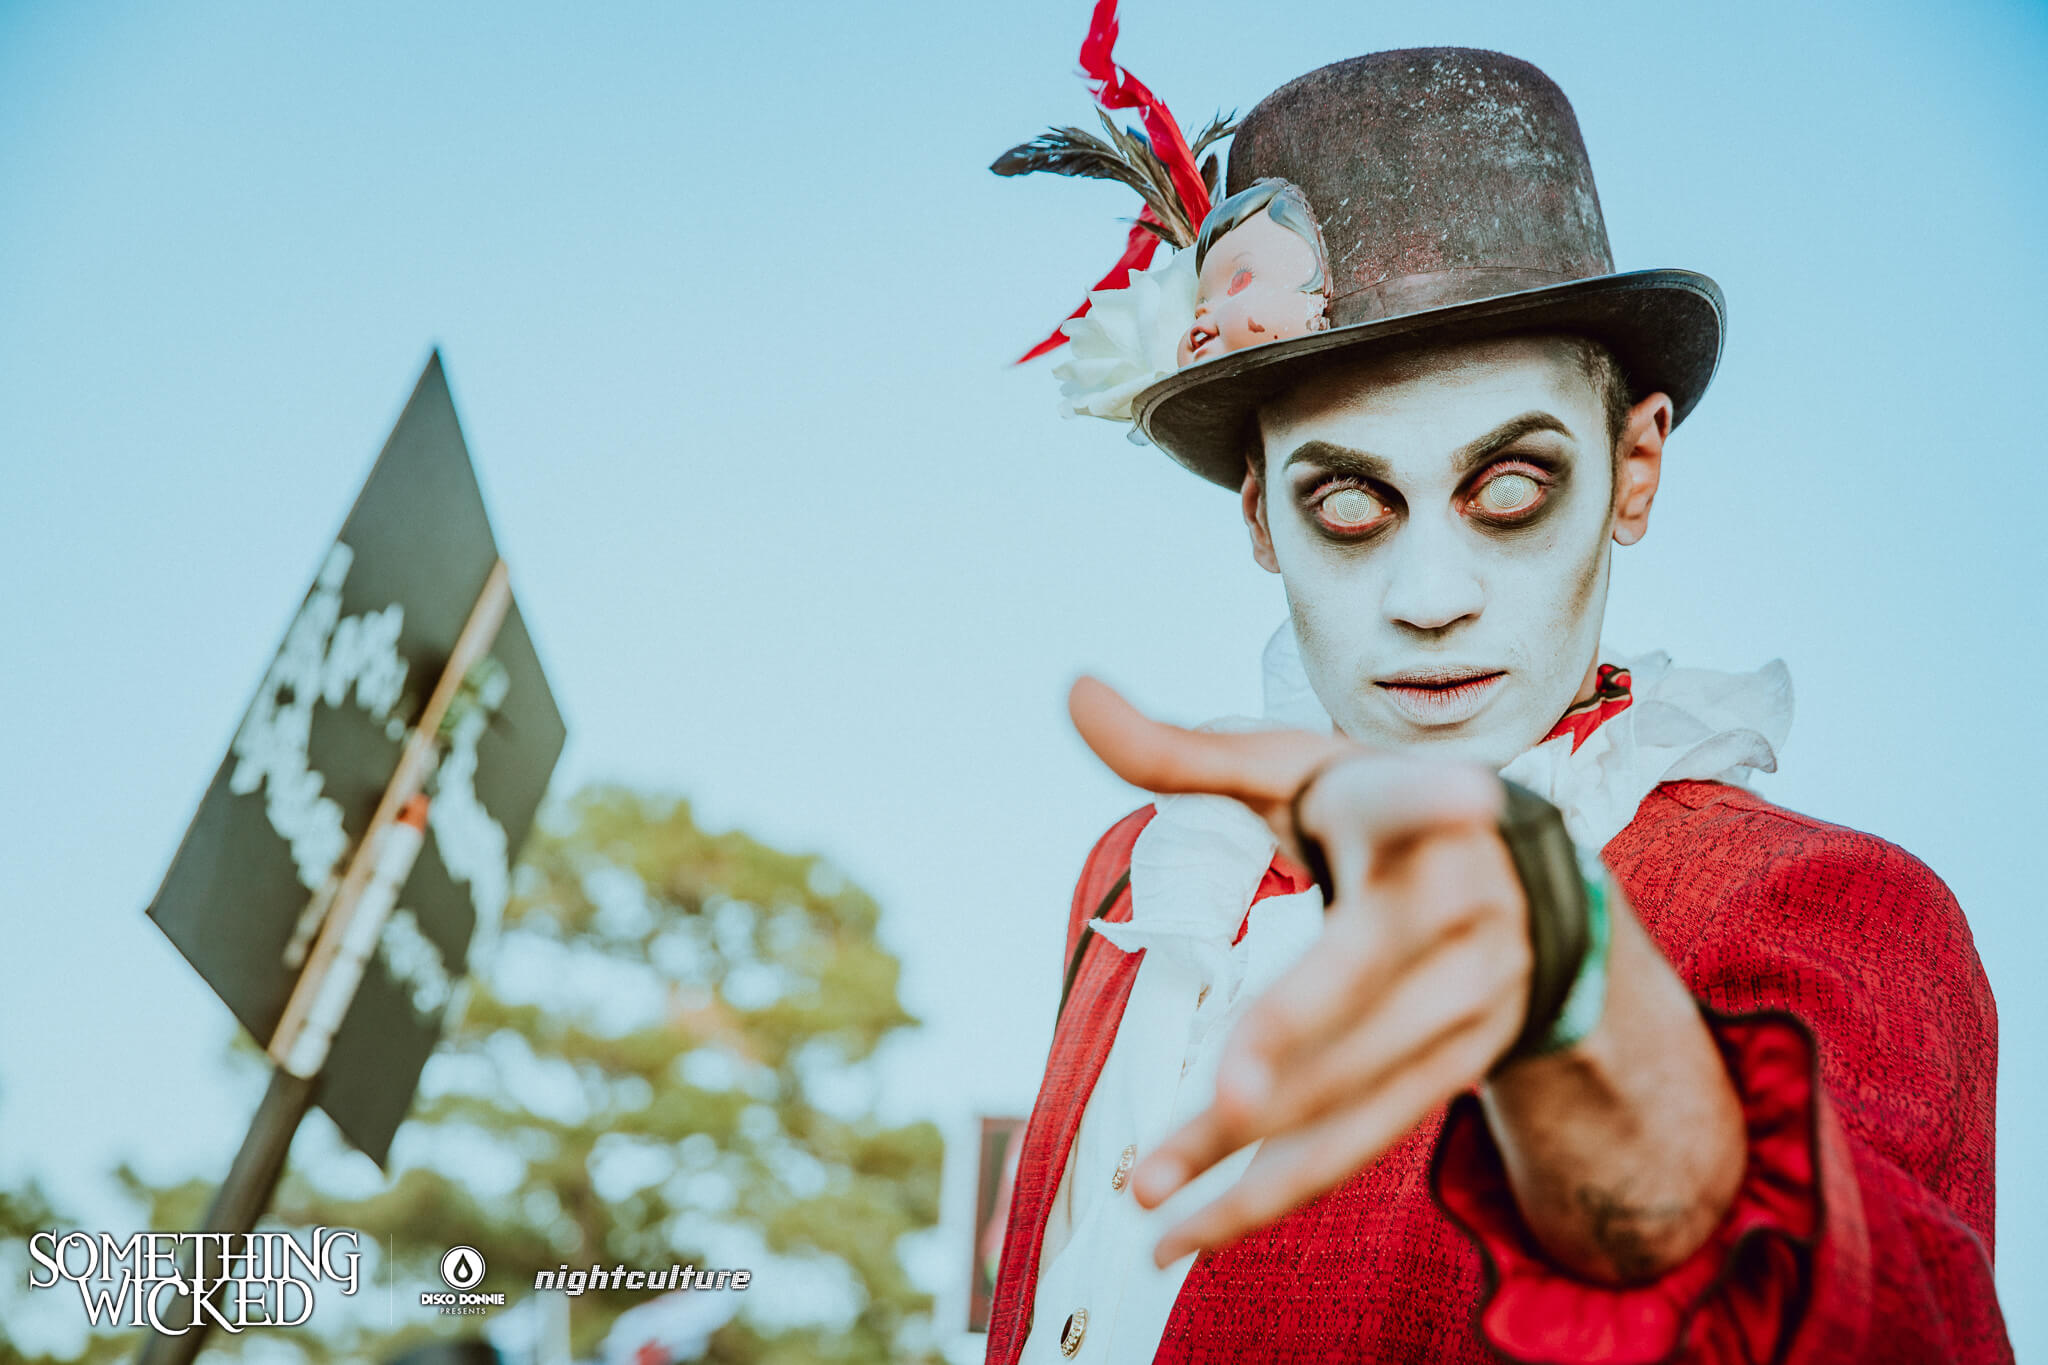 stage performer at something wicked festival